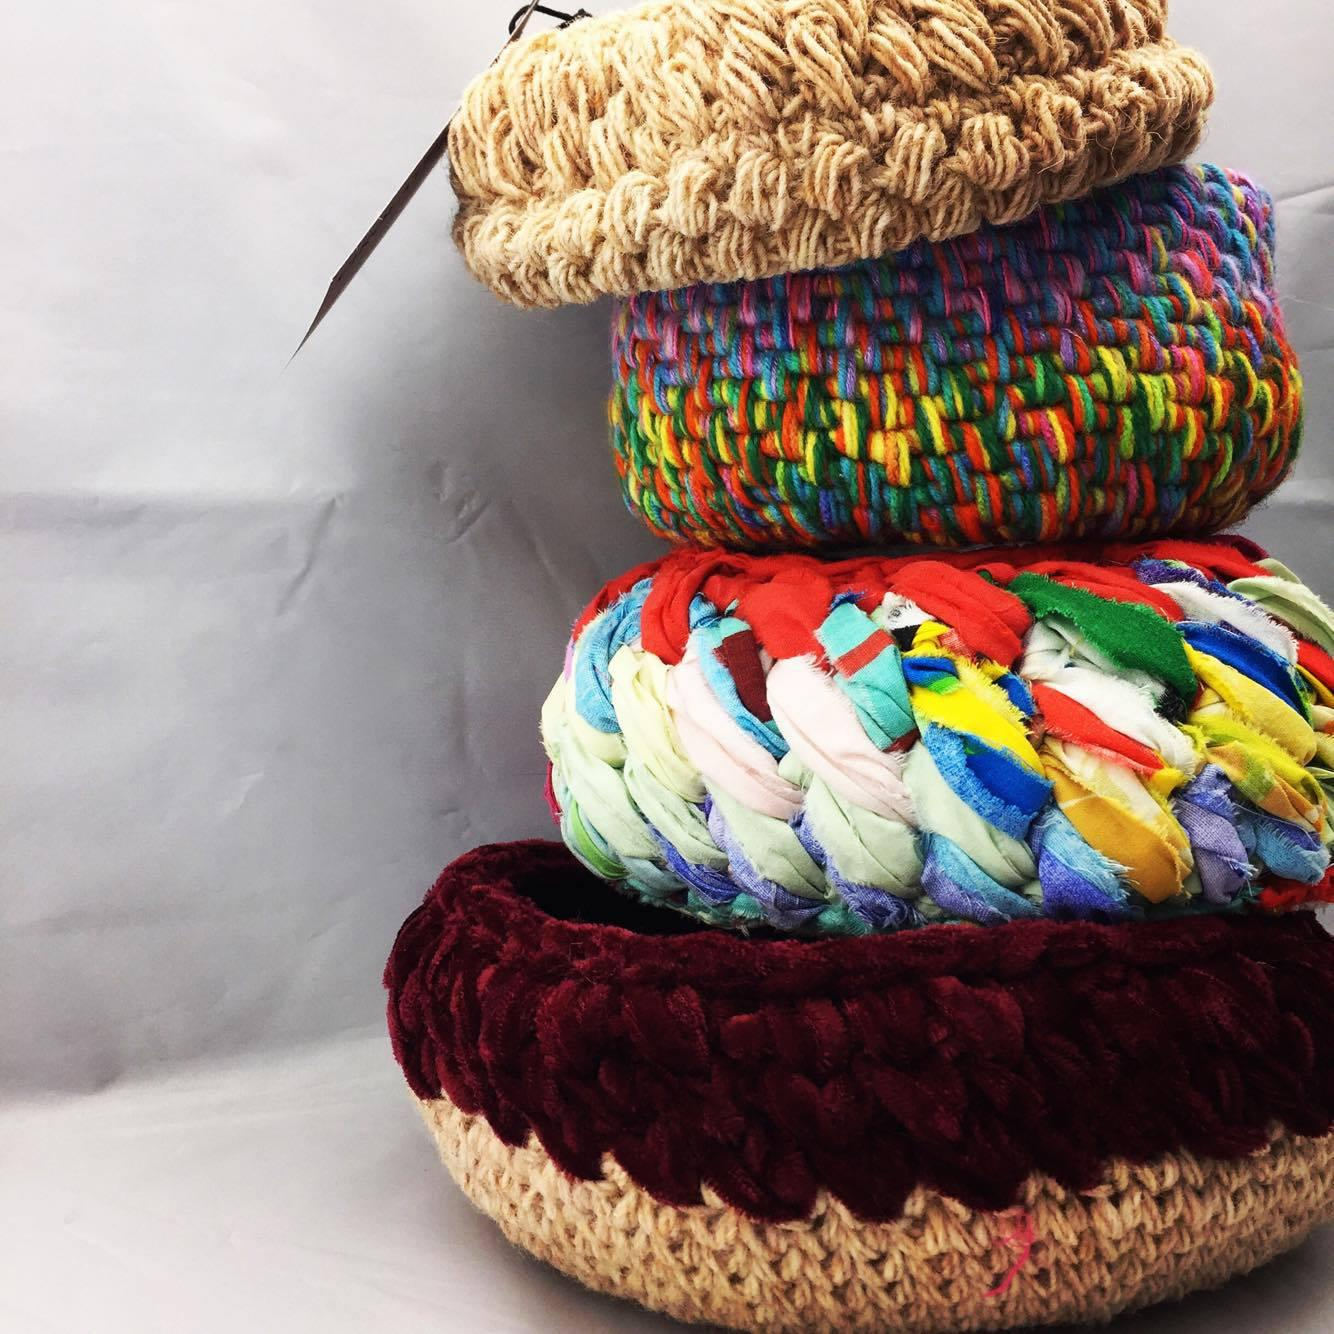 Crochet & coiled bowls made from recycled materials